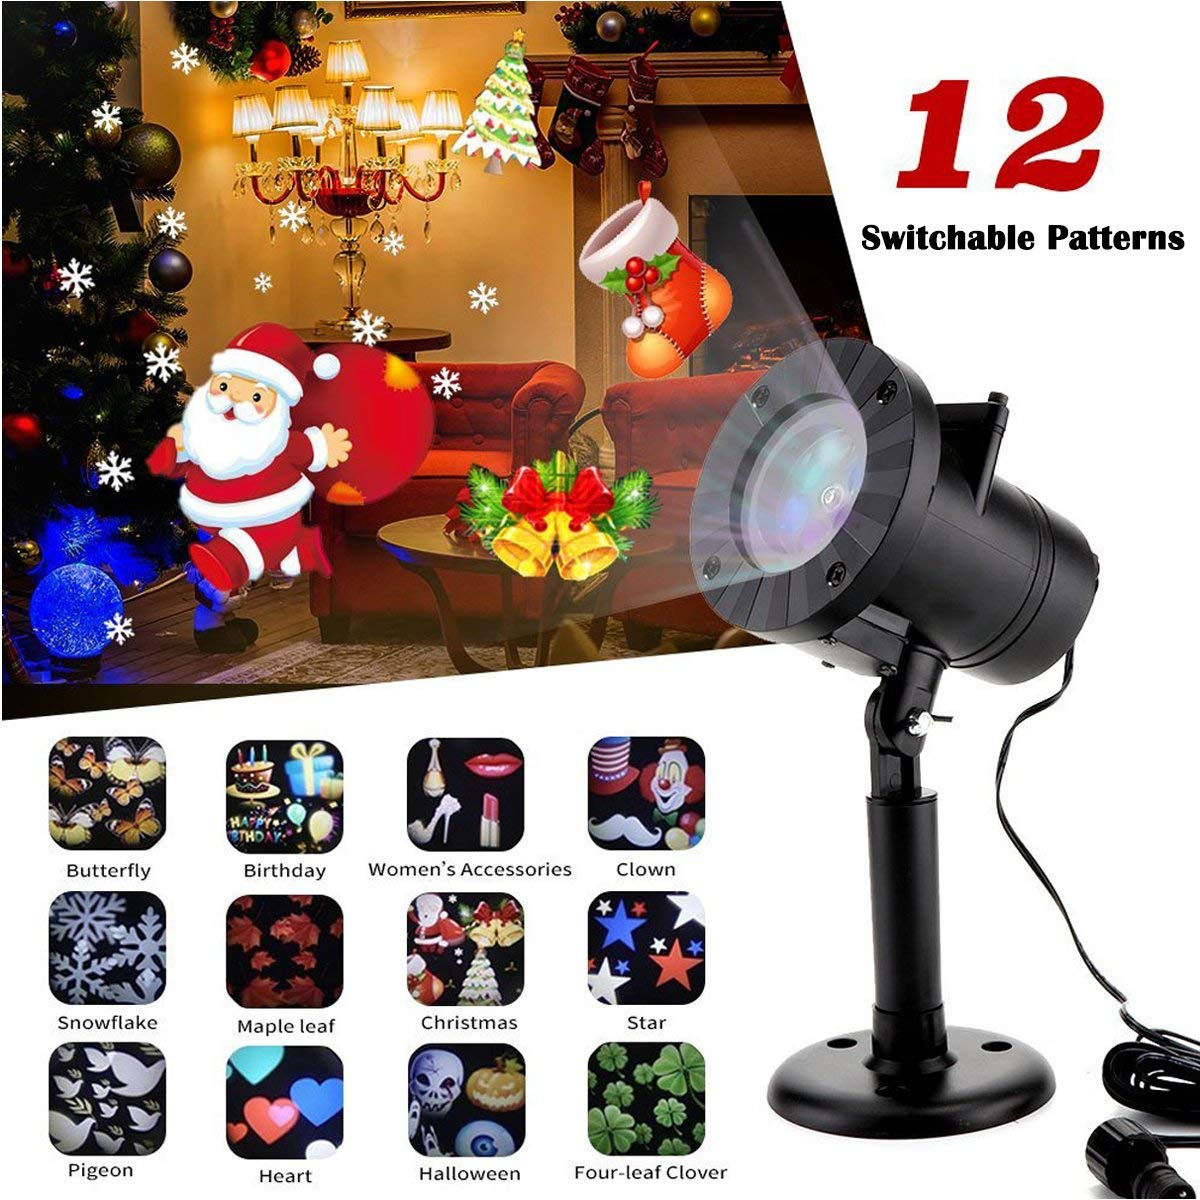 Christmas Light Projector, Tagital LED Projector Lights 12 Switchable Patterns Indoor and Outdoor Landscape Spotlight for Children Birthday Party Holiday Wedding Home Decor